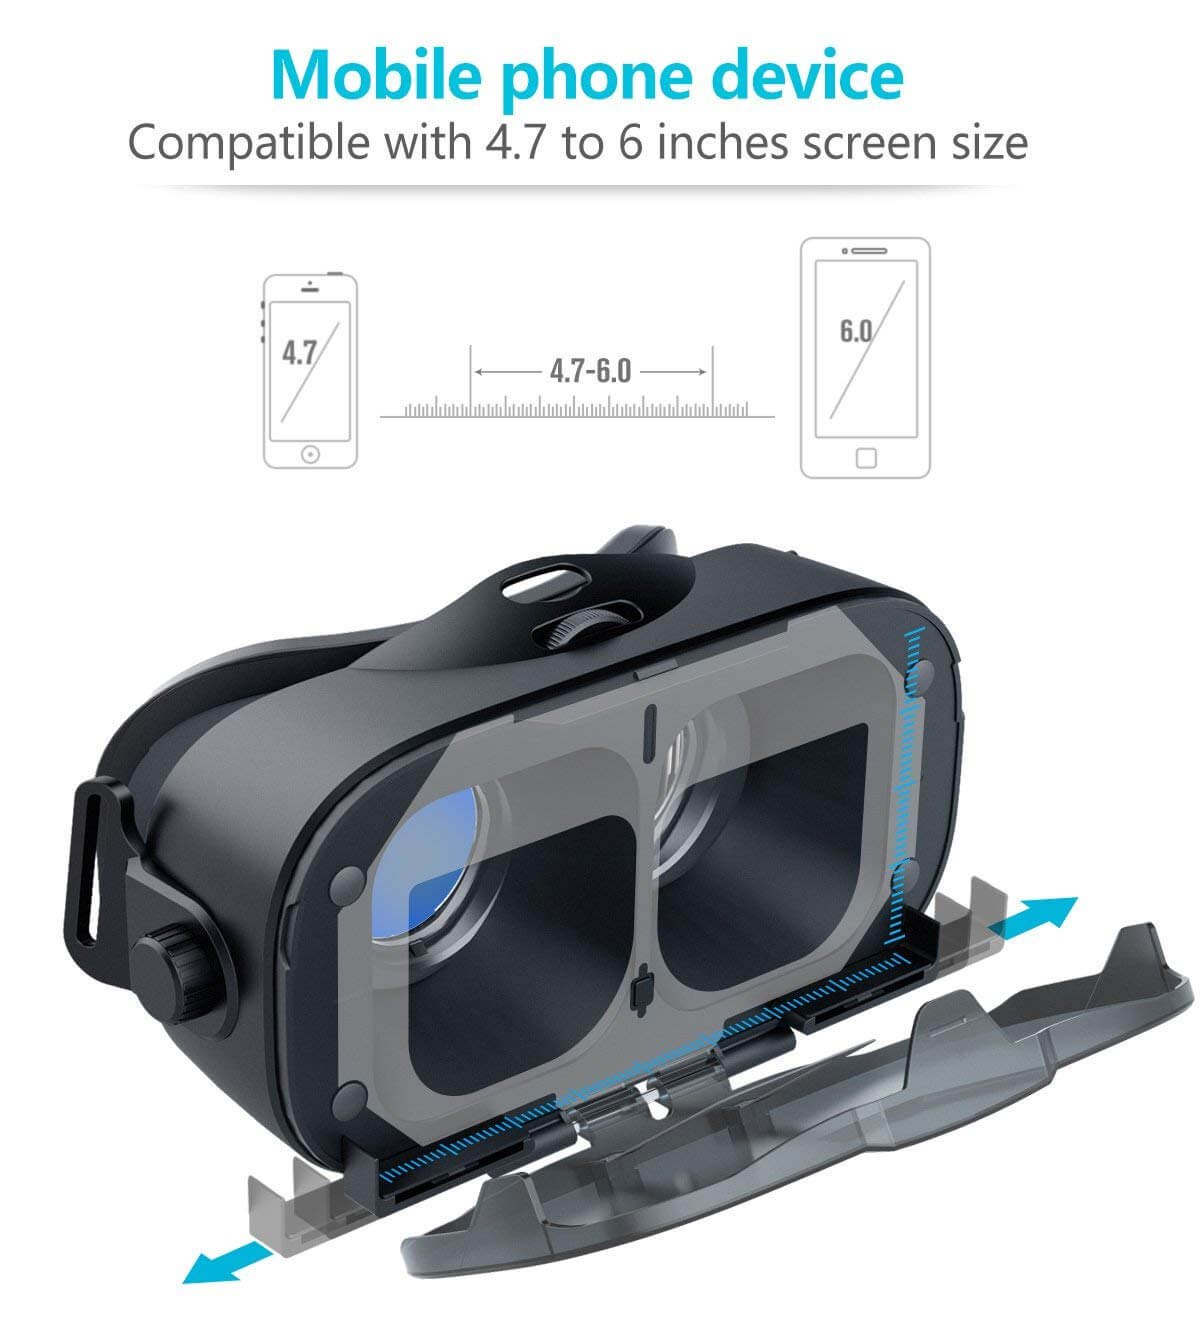 AOINE VR Headset Full Review With Pros And Cons